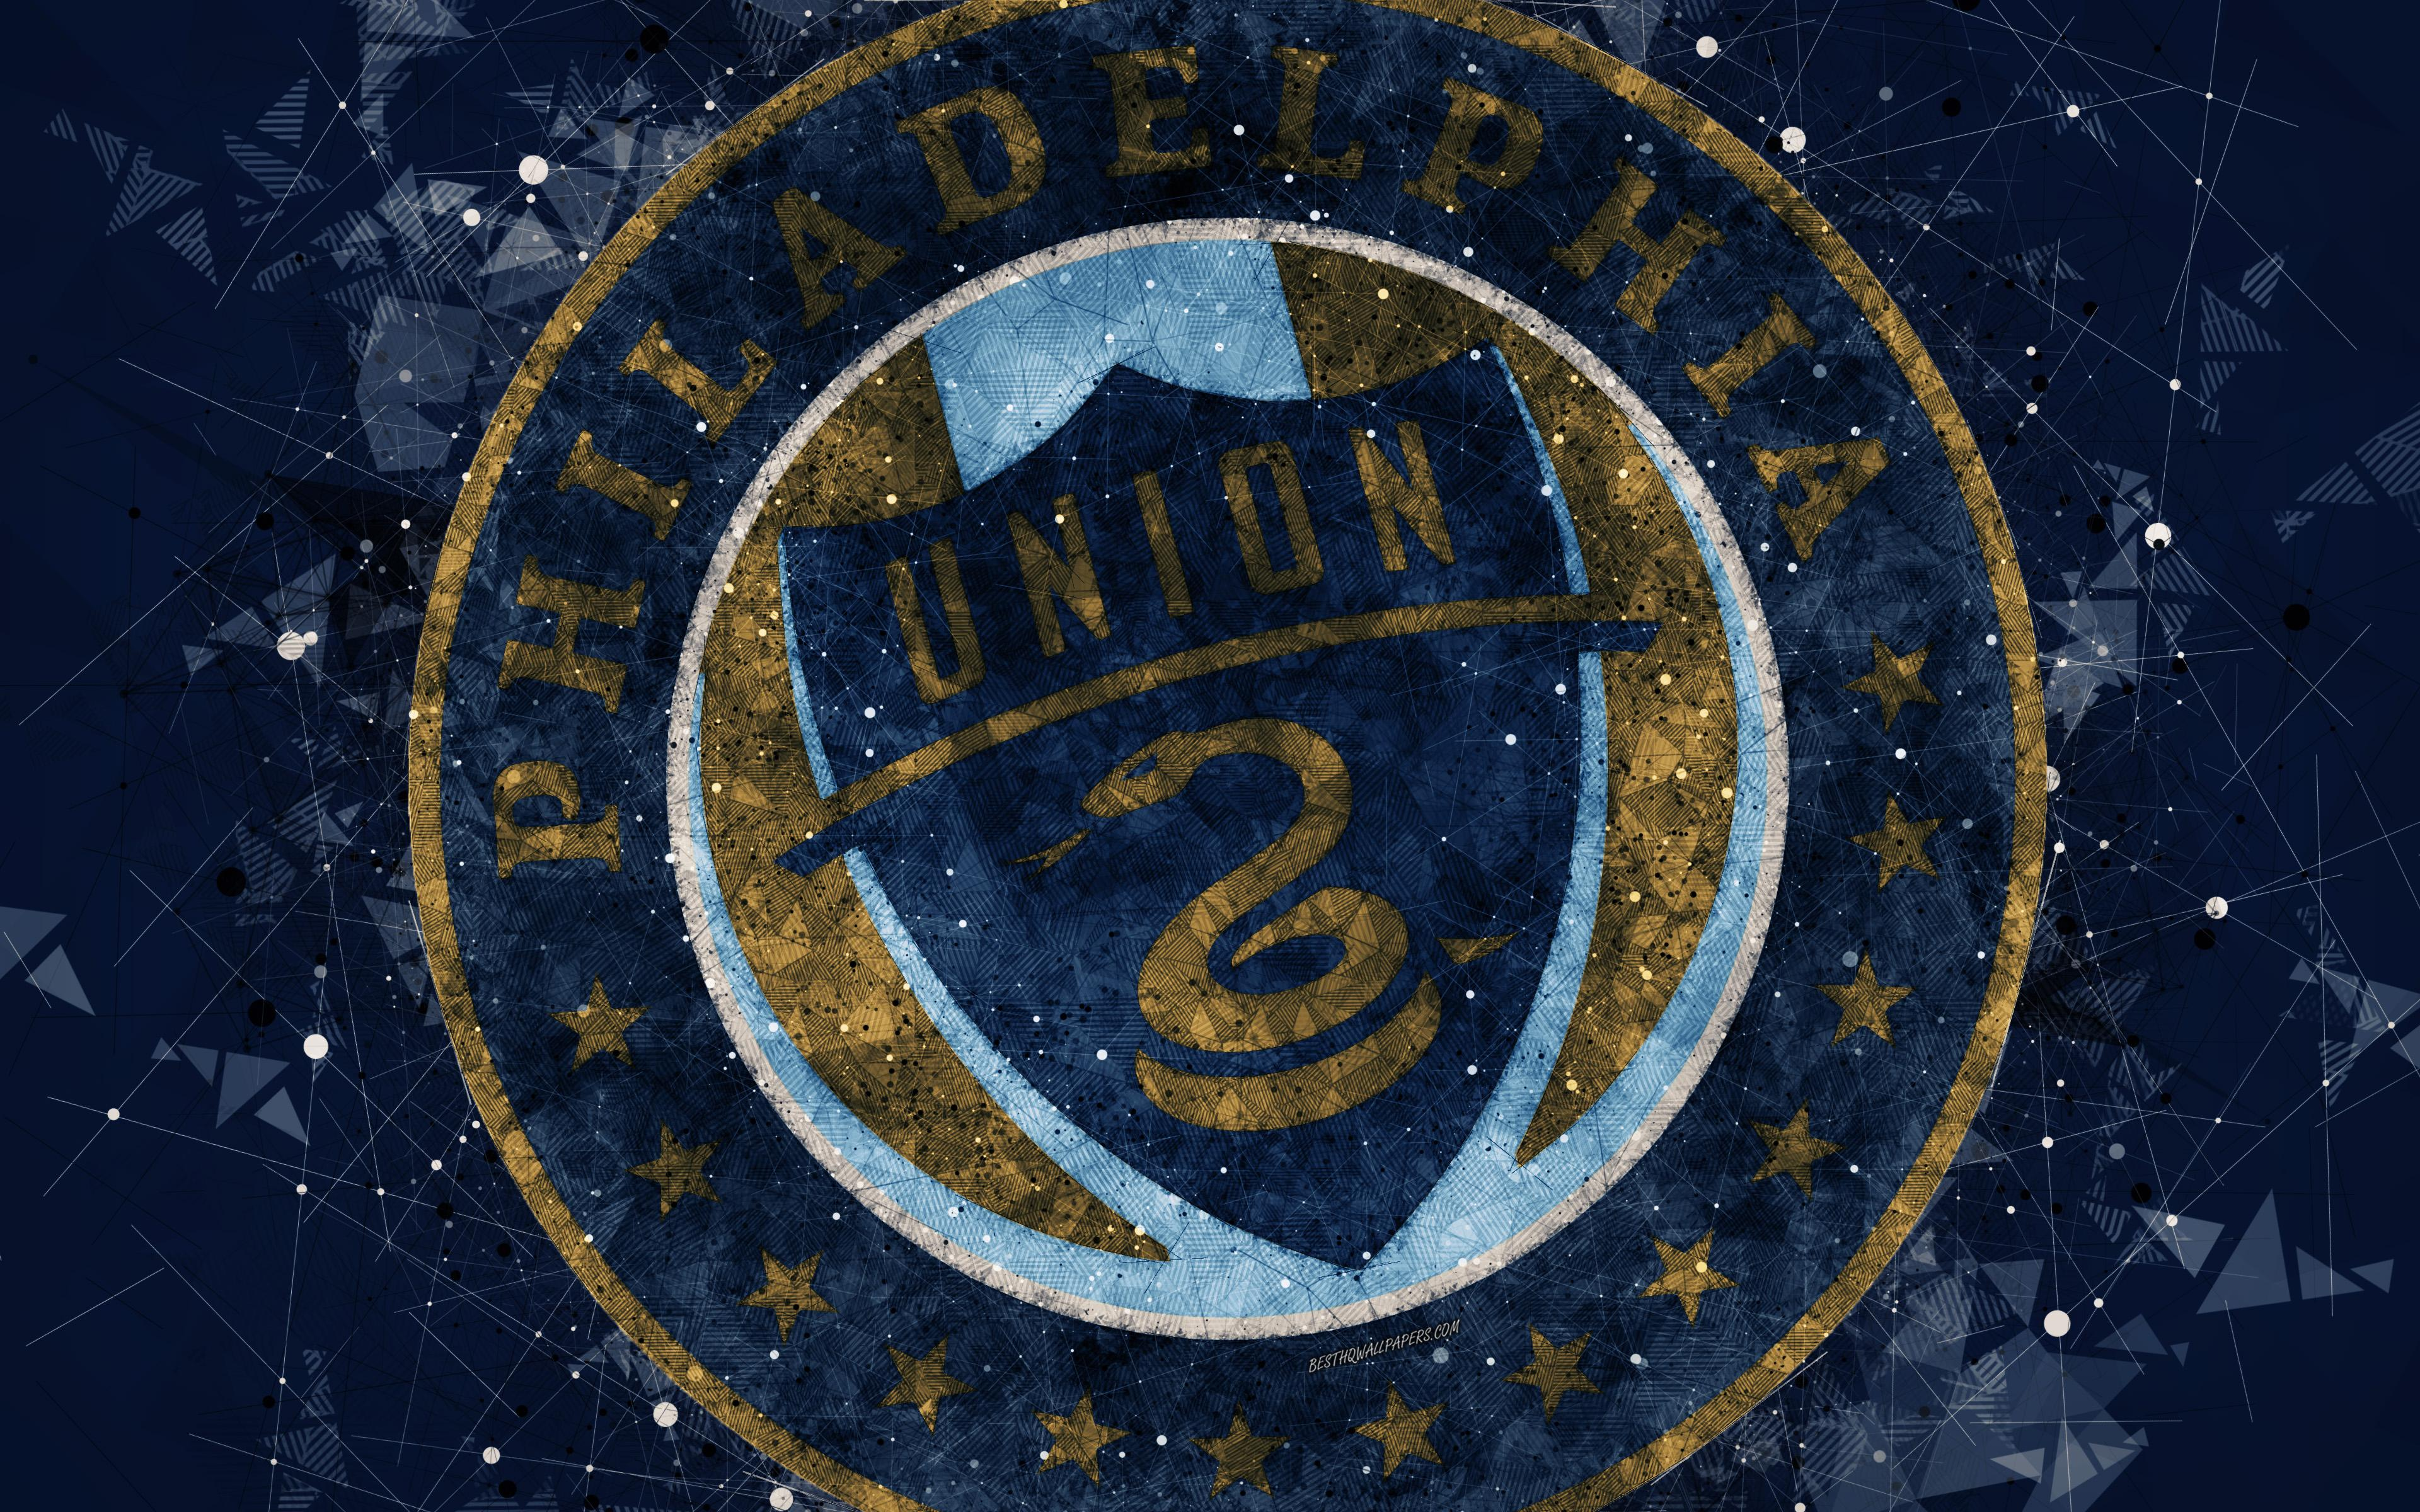 Download wallpapers Philadelphia Union, 4k, American soccer club ...